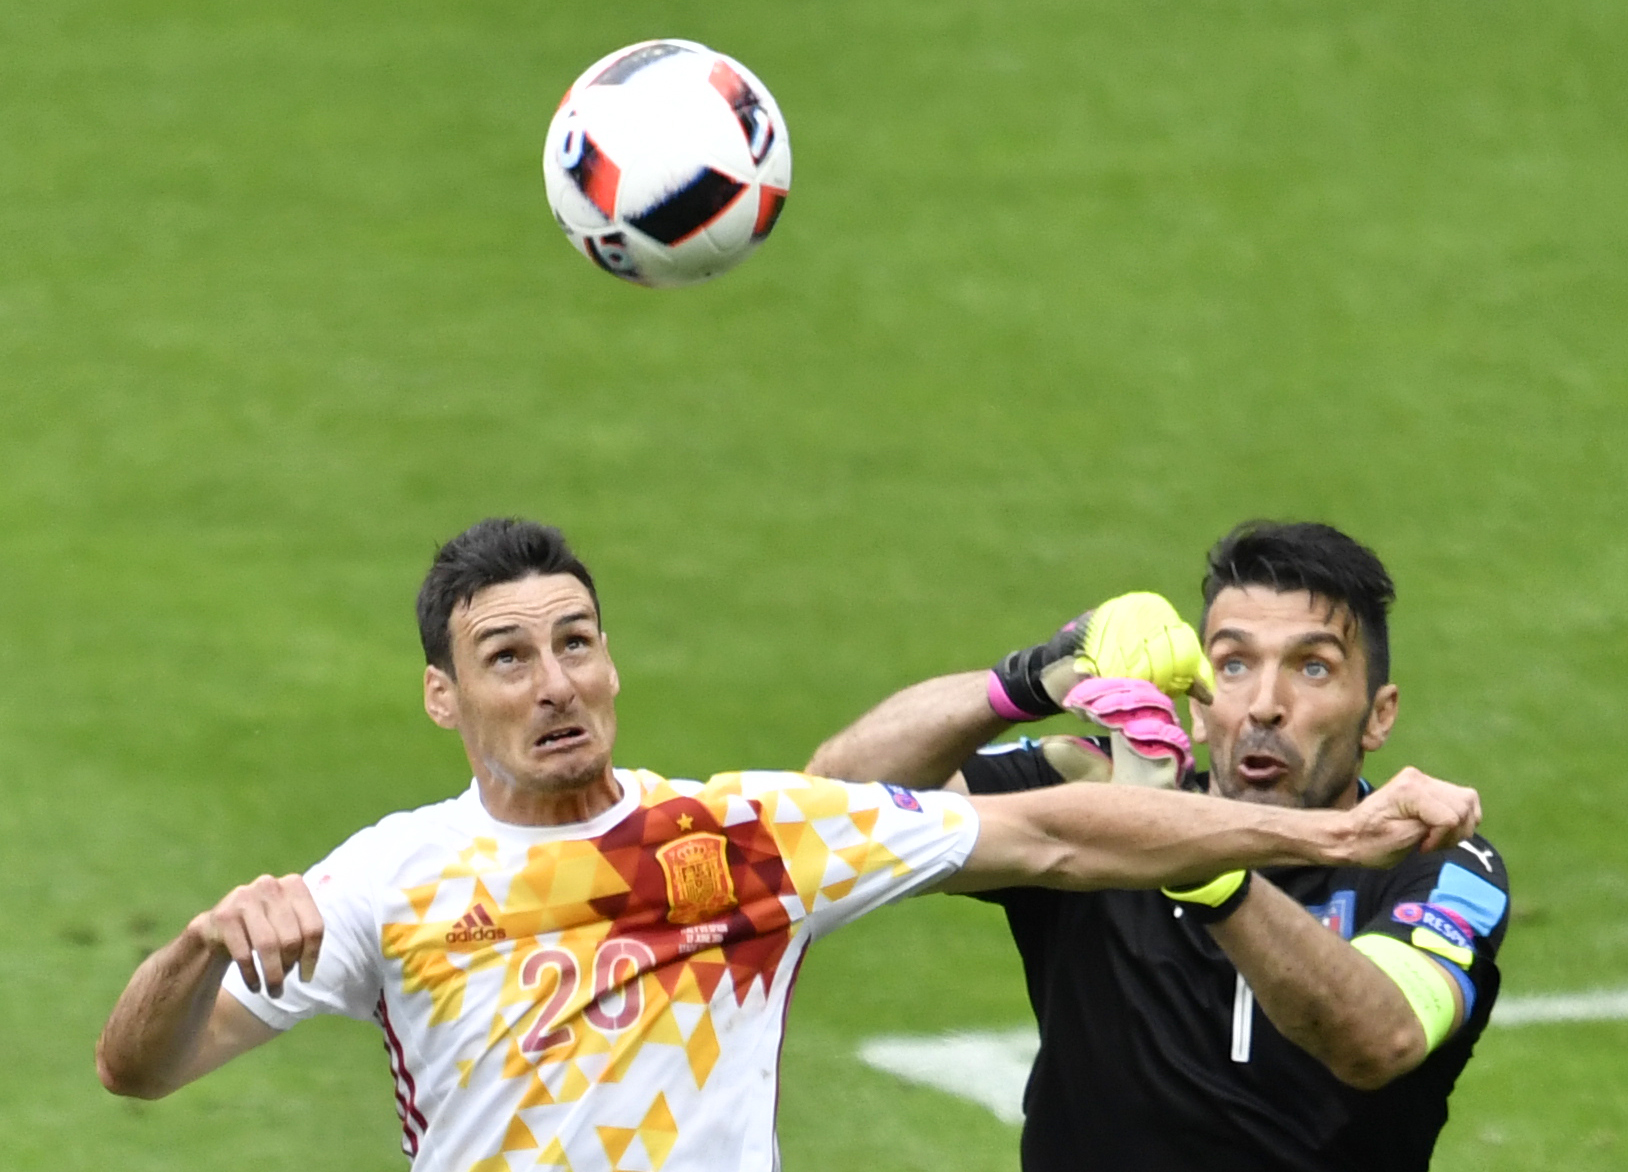 Spain's forward Aritz Aduriz (L) vies with Italy's goalkeeper Gianluigi Buffon during Euro 2016 round of 16 football match between Italy and Spain at the Stade de France stadium in Saint-Denis, near Paris, on June 27, 2016. / AFP / PHILIPPE LOPEZ (Photo credit should read PHILIPPE LOPEZ/AFP/Getty Images)